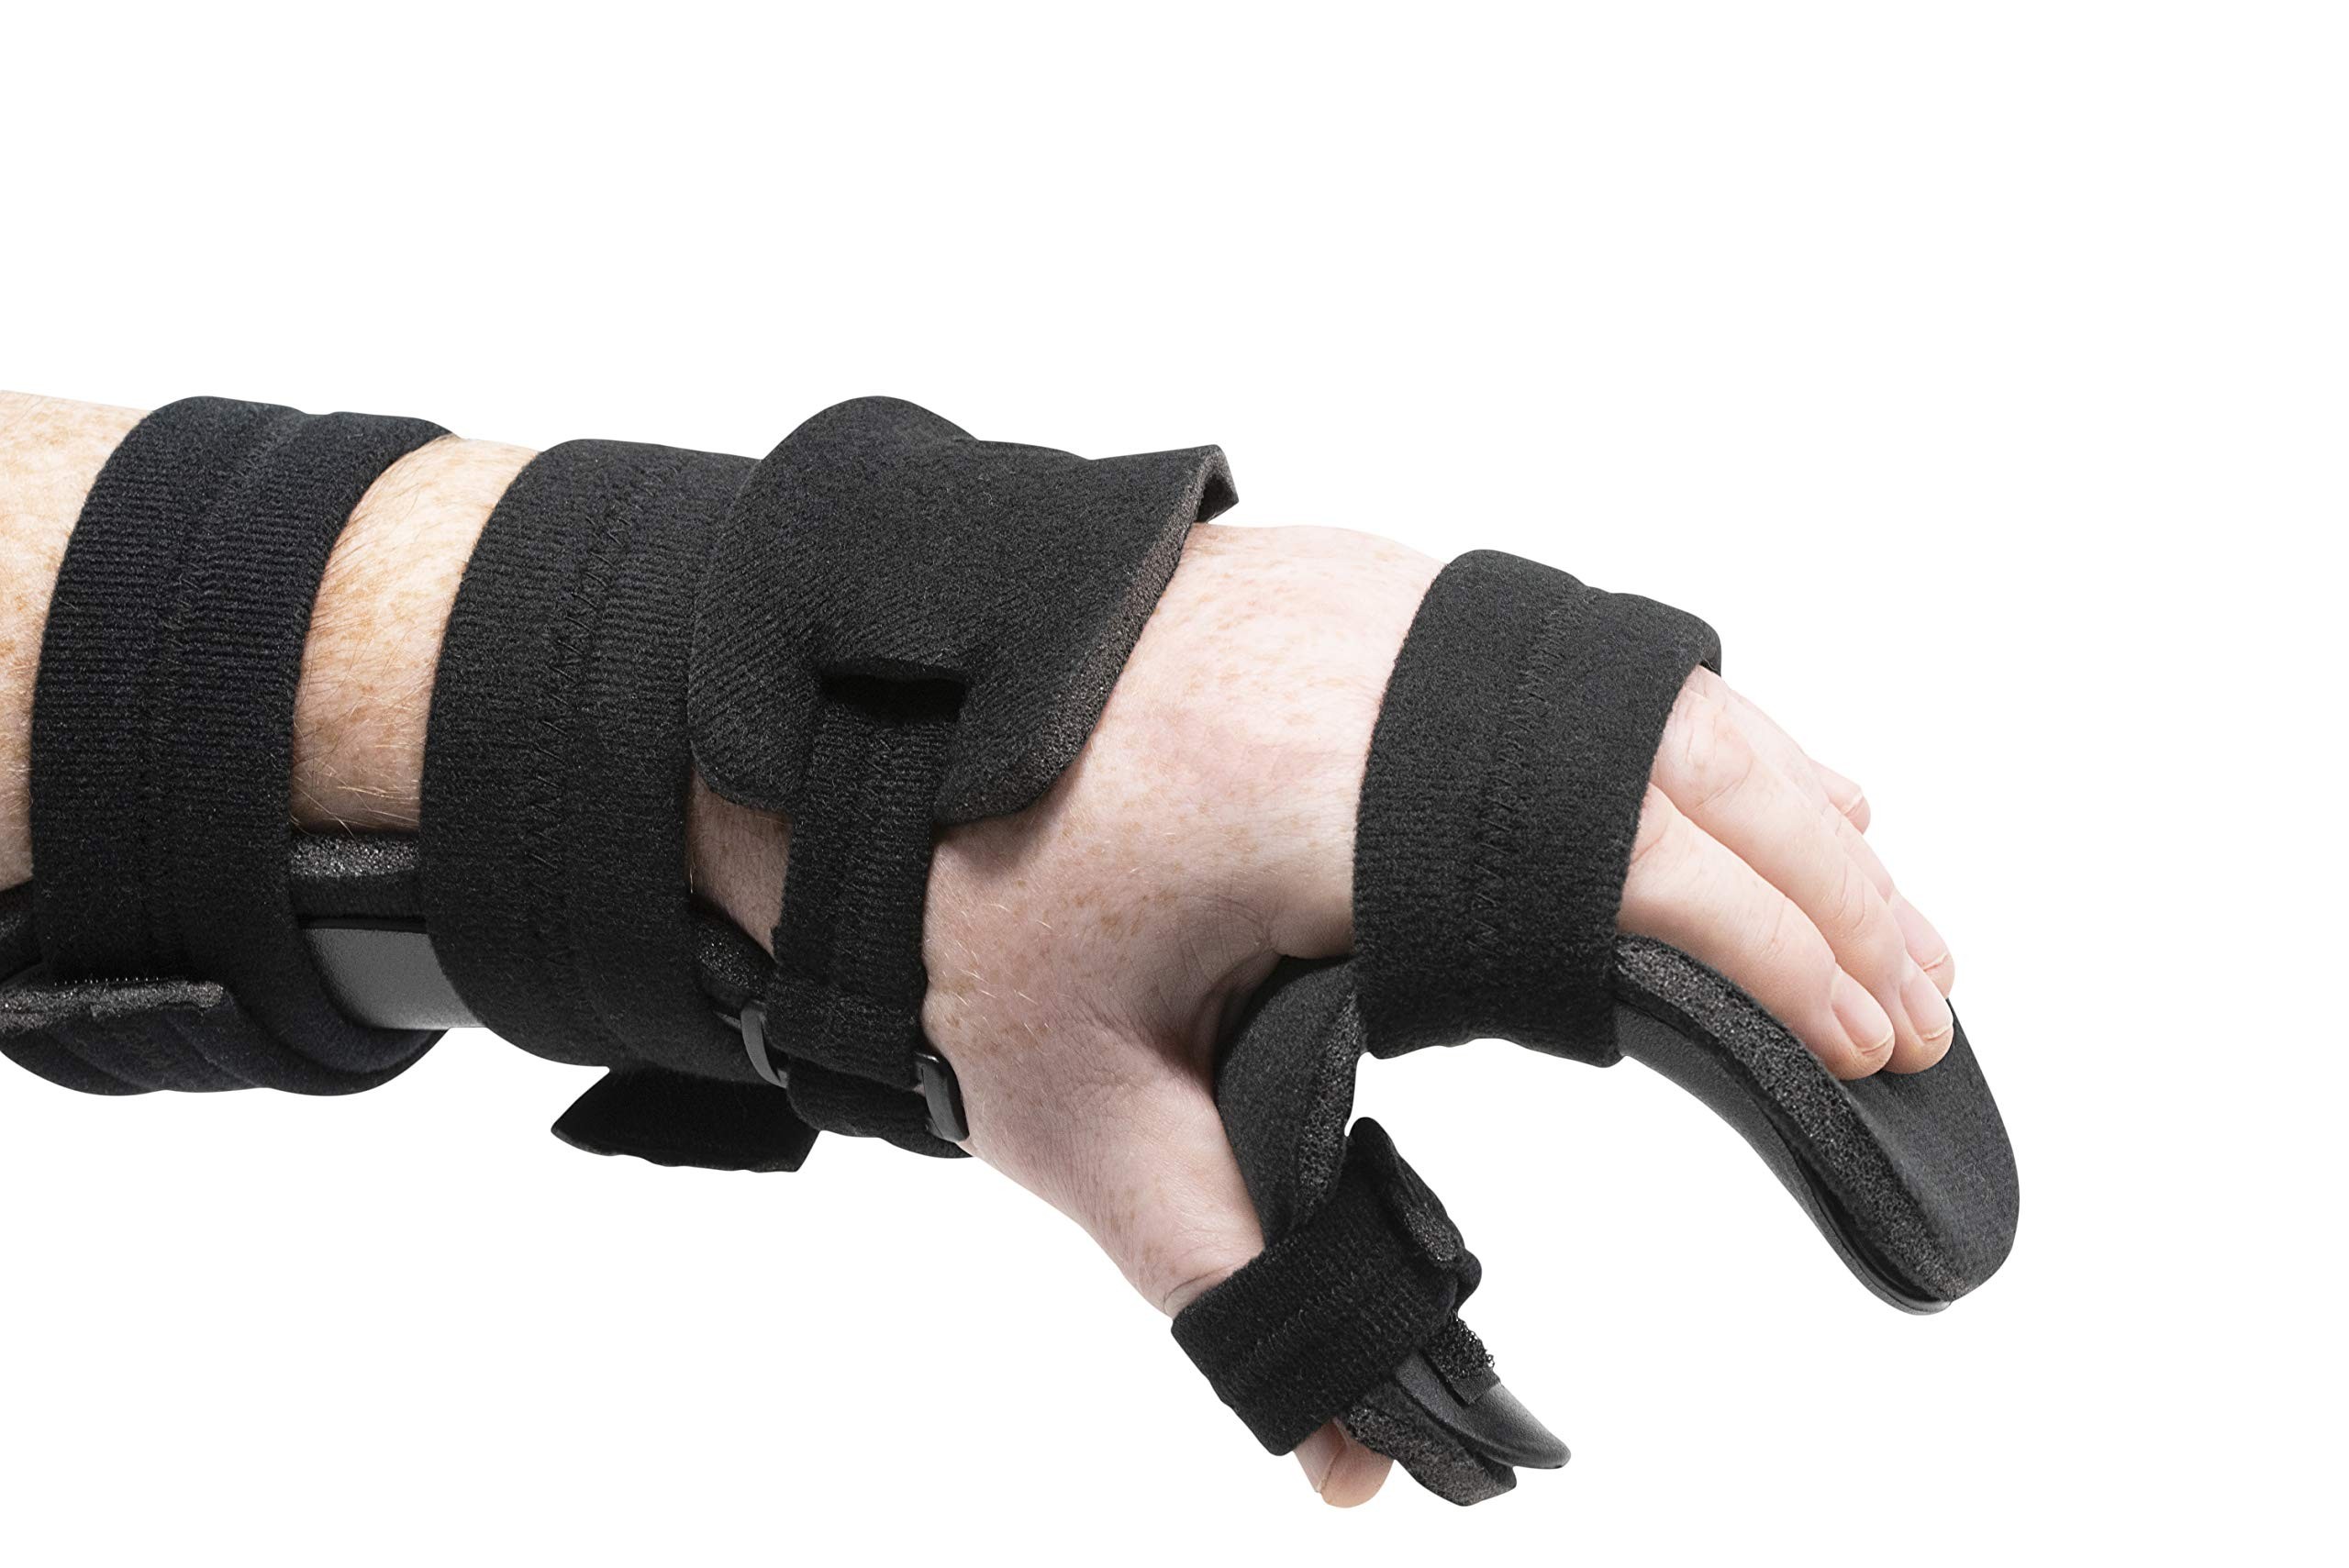 Stroke Hand Splint- Soft Resting Hand Splint for Flexion Contractures, Comfortably Stretch and Rest Hands for Long Term Ease with Functional Hand Splint, an American Heritage Industries(Left, Small) by American Heritage Industries (Image #1)